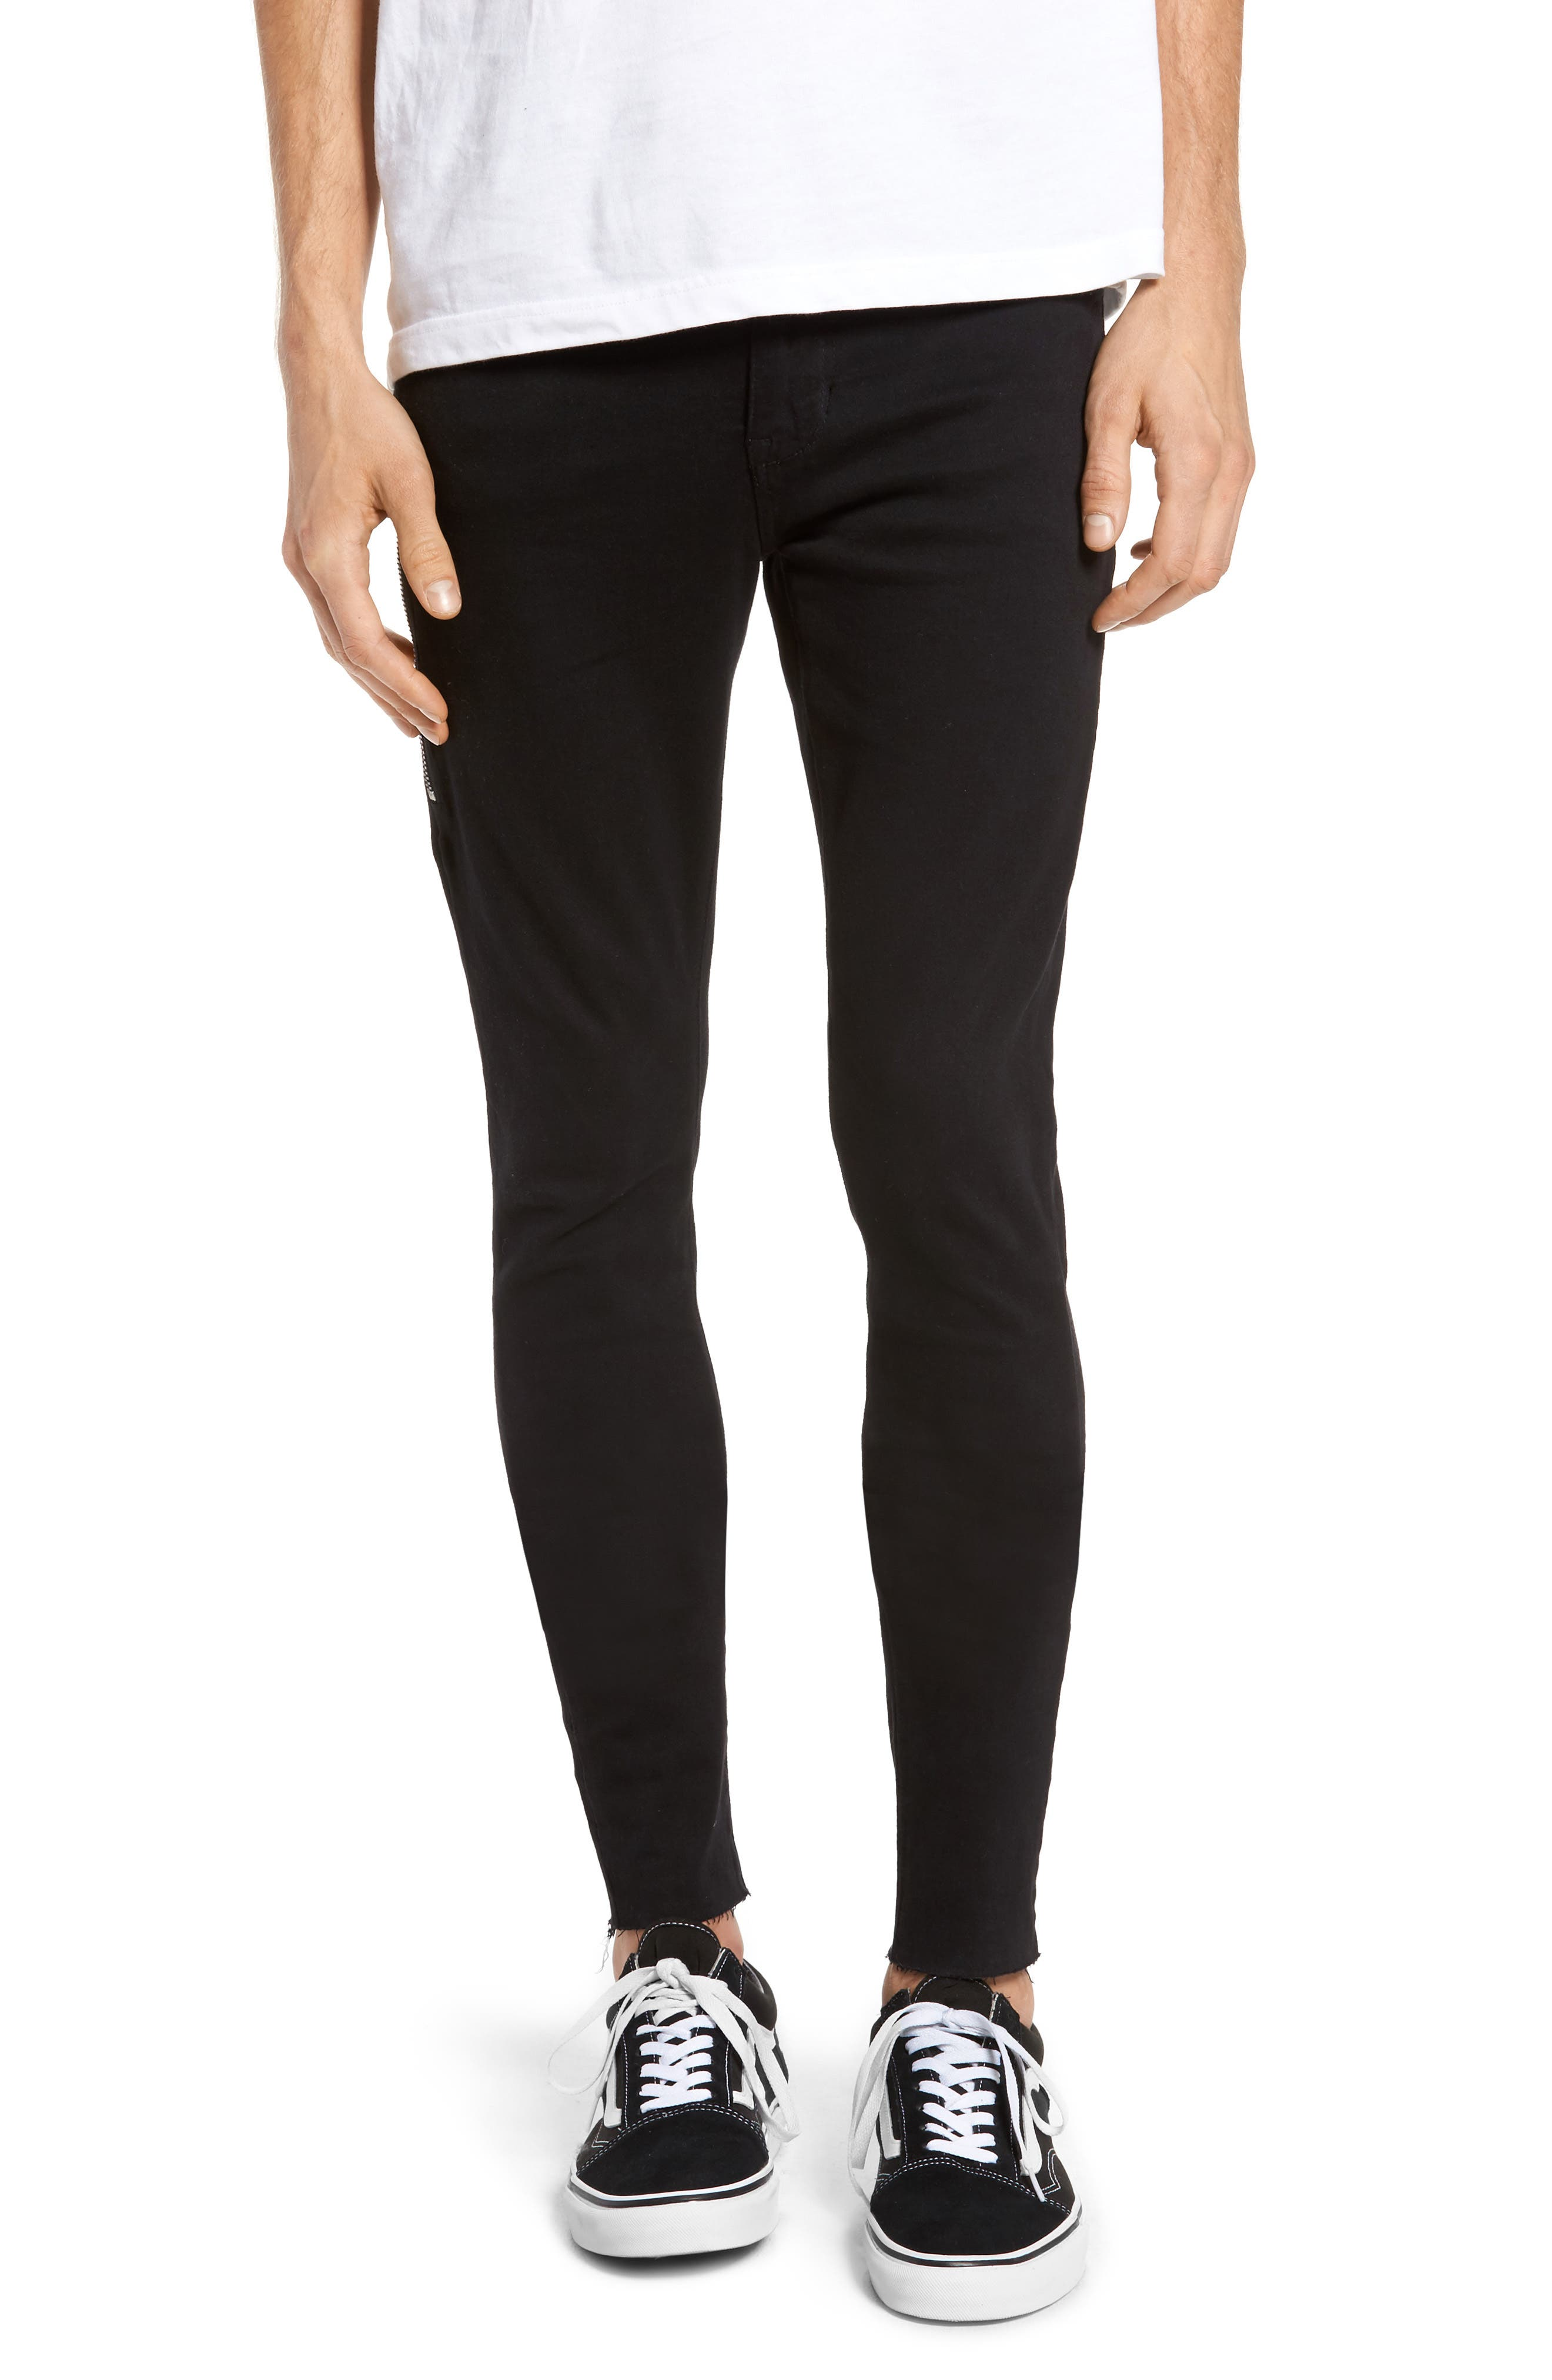 Leroy Skinny Fit Jeans,                             Main thumbnail 1, color,                             001